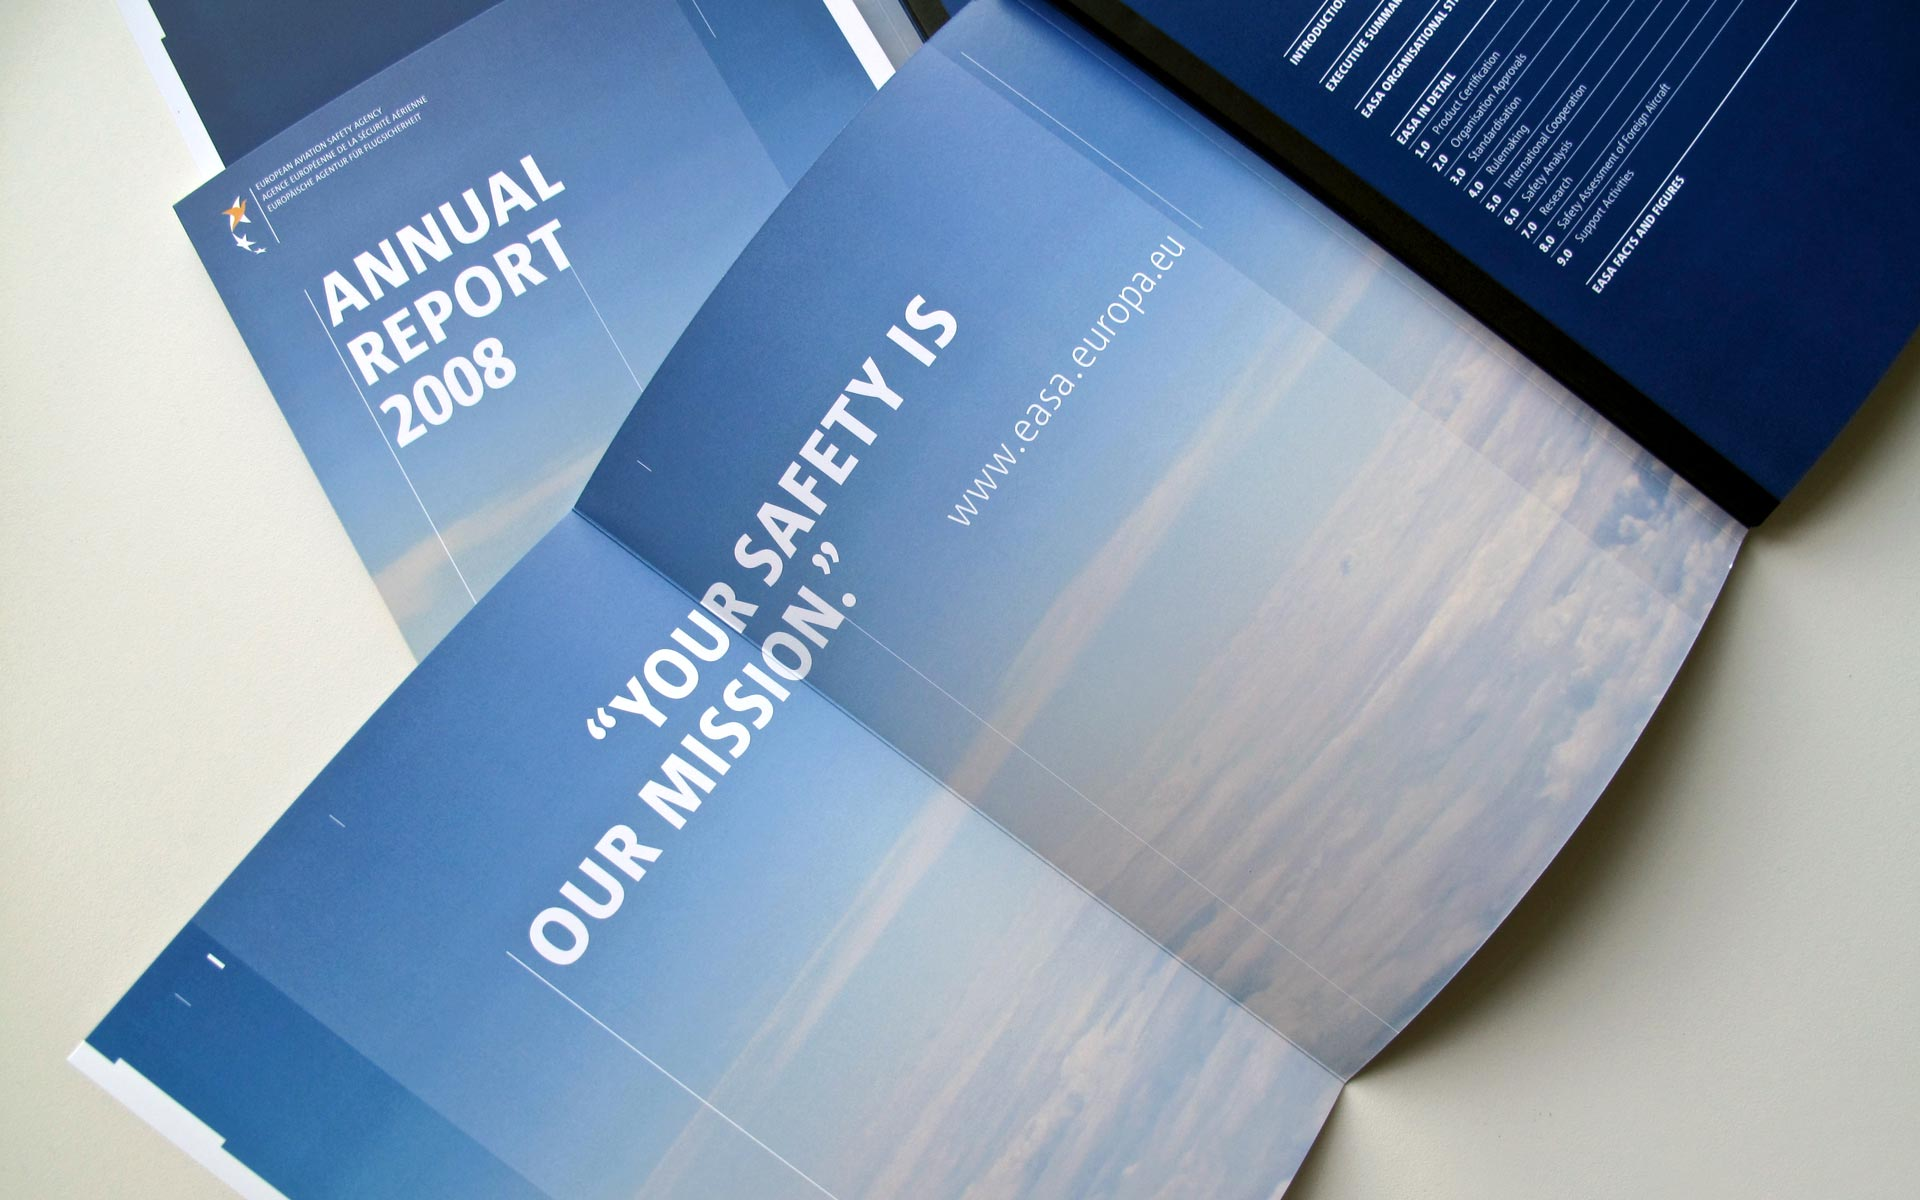 EASA Corporate Design, ausklappbarer Titel im Annual Report, Schweizer Brochure